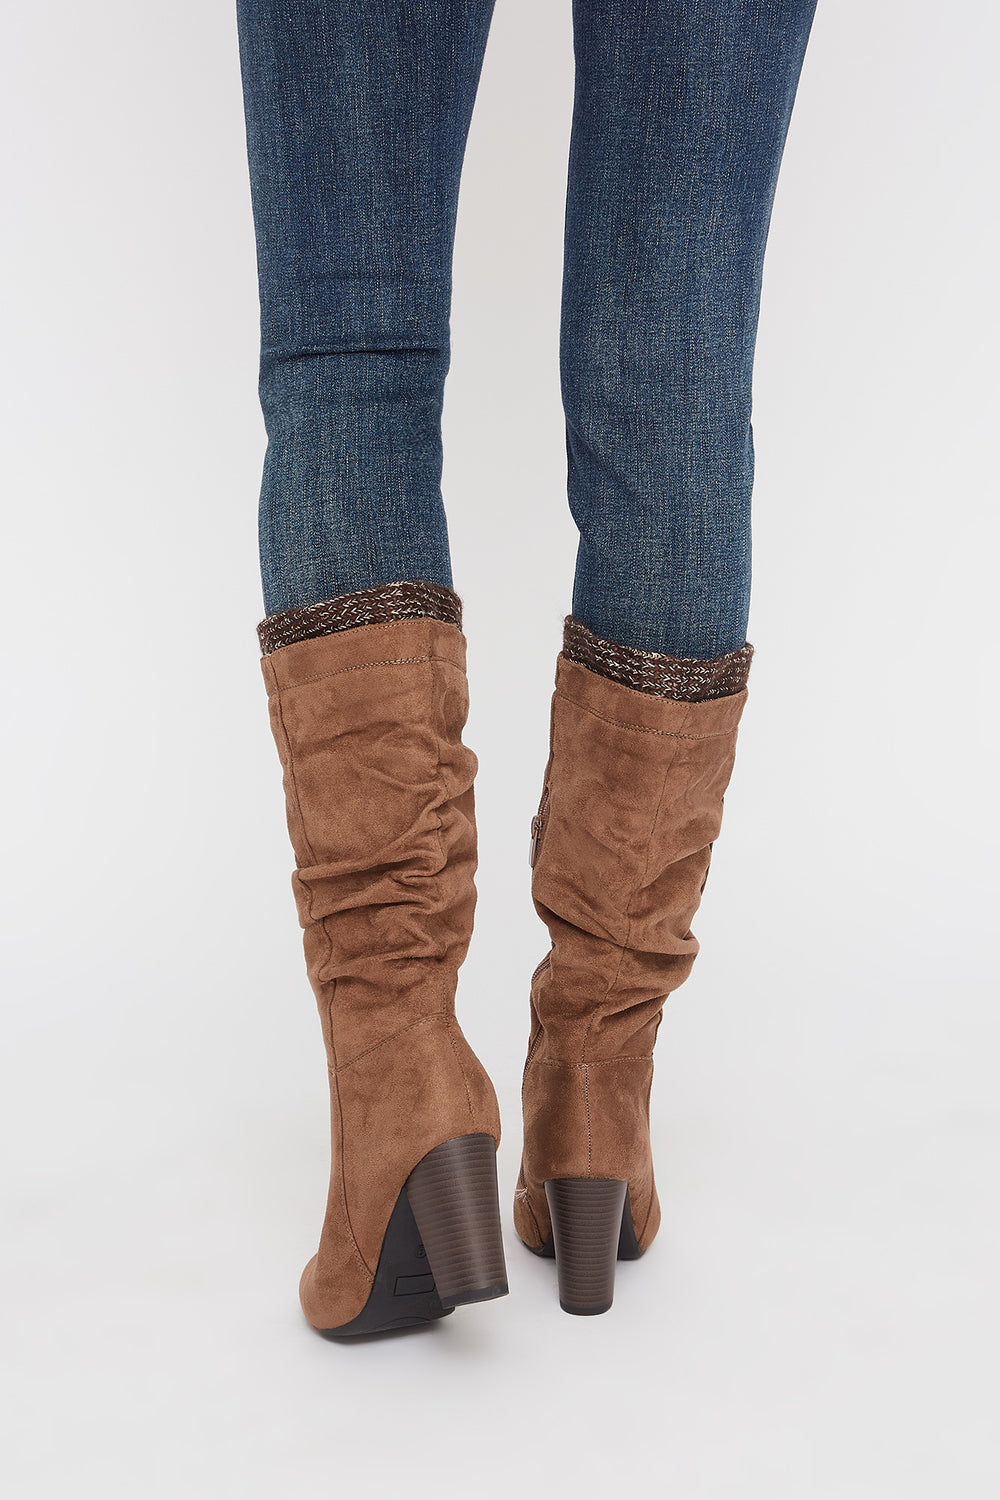 Ruched Knit Mid Calf High Heel Boot Taupe